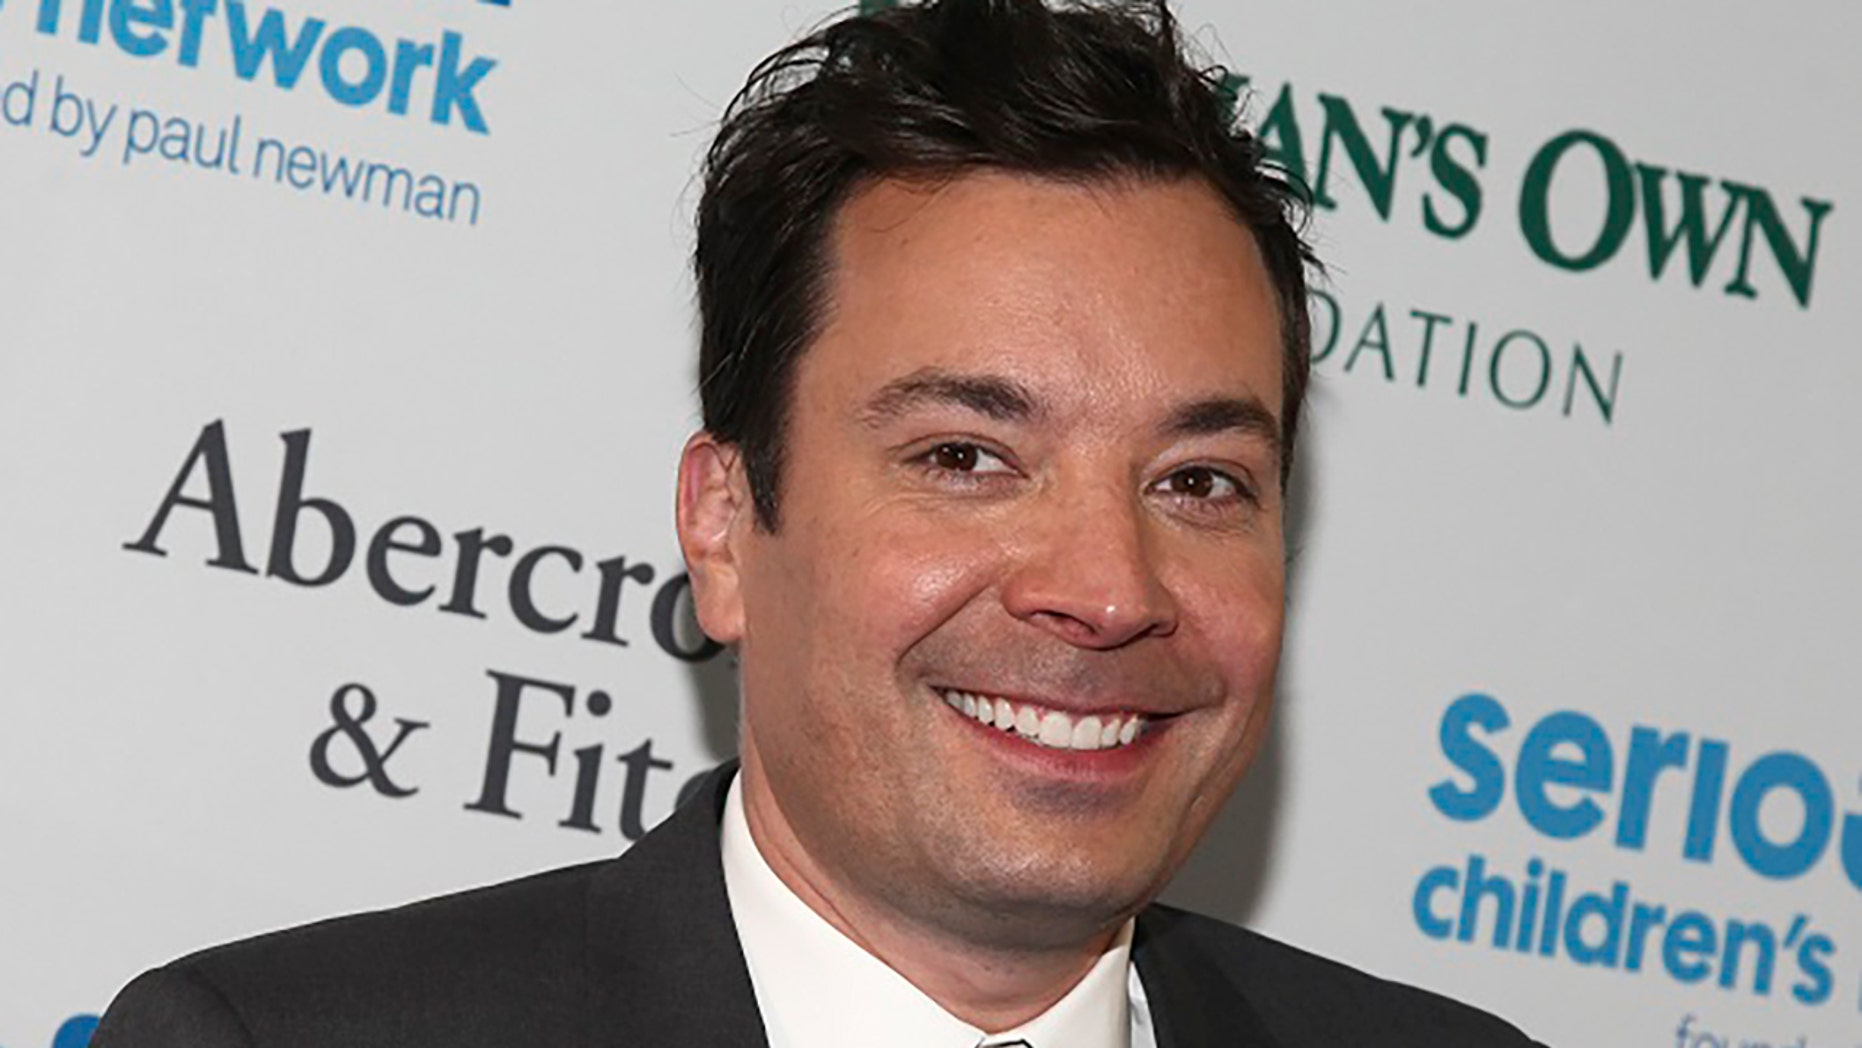 Jimmy Fallon's late night show's ratings have sharply declined.